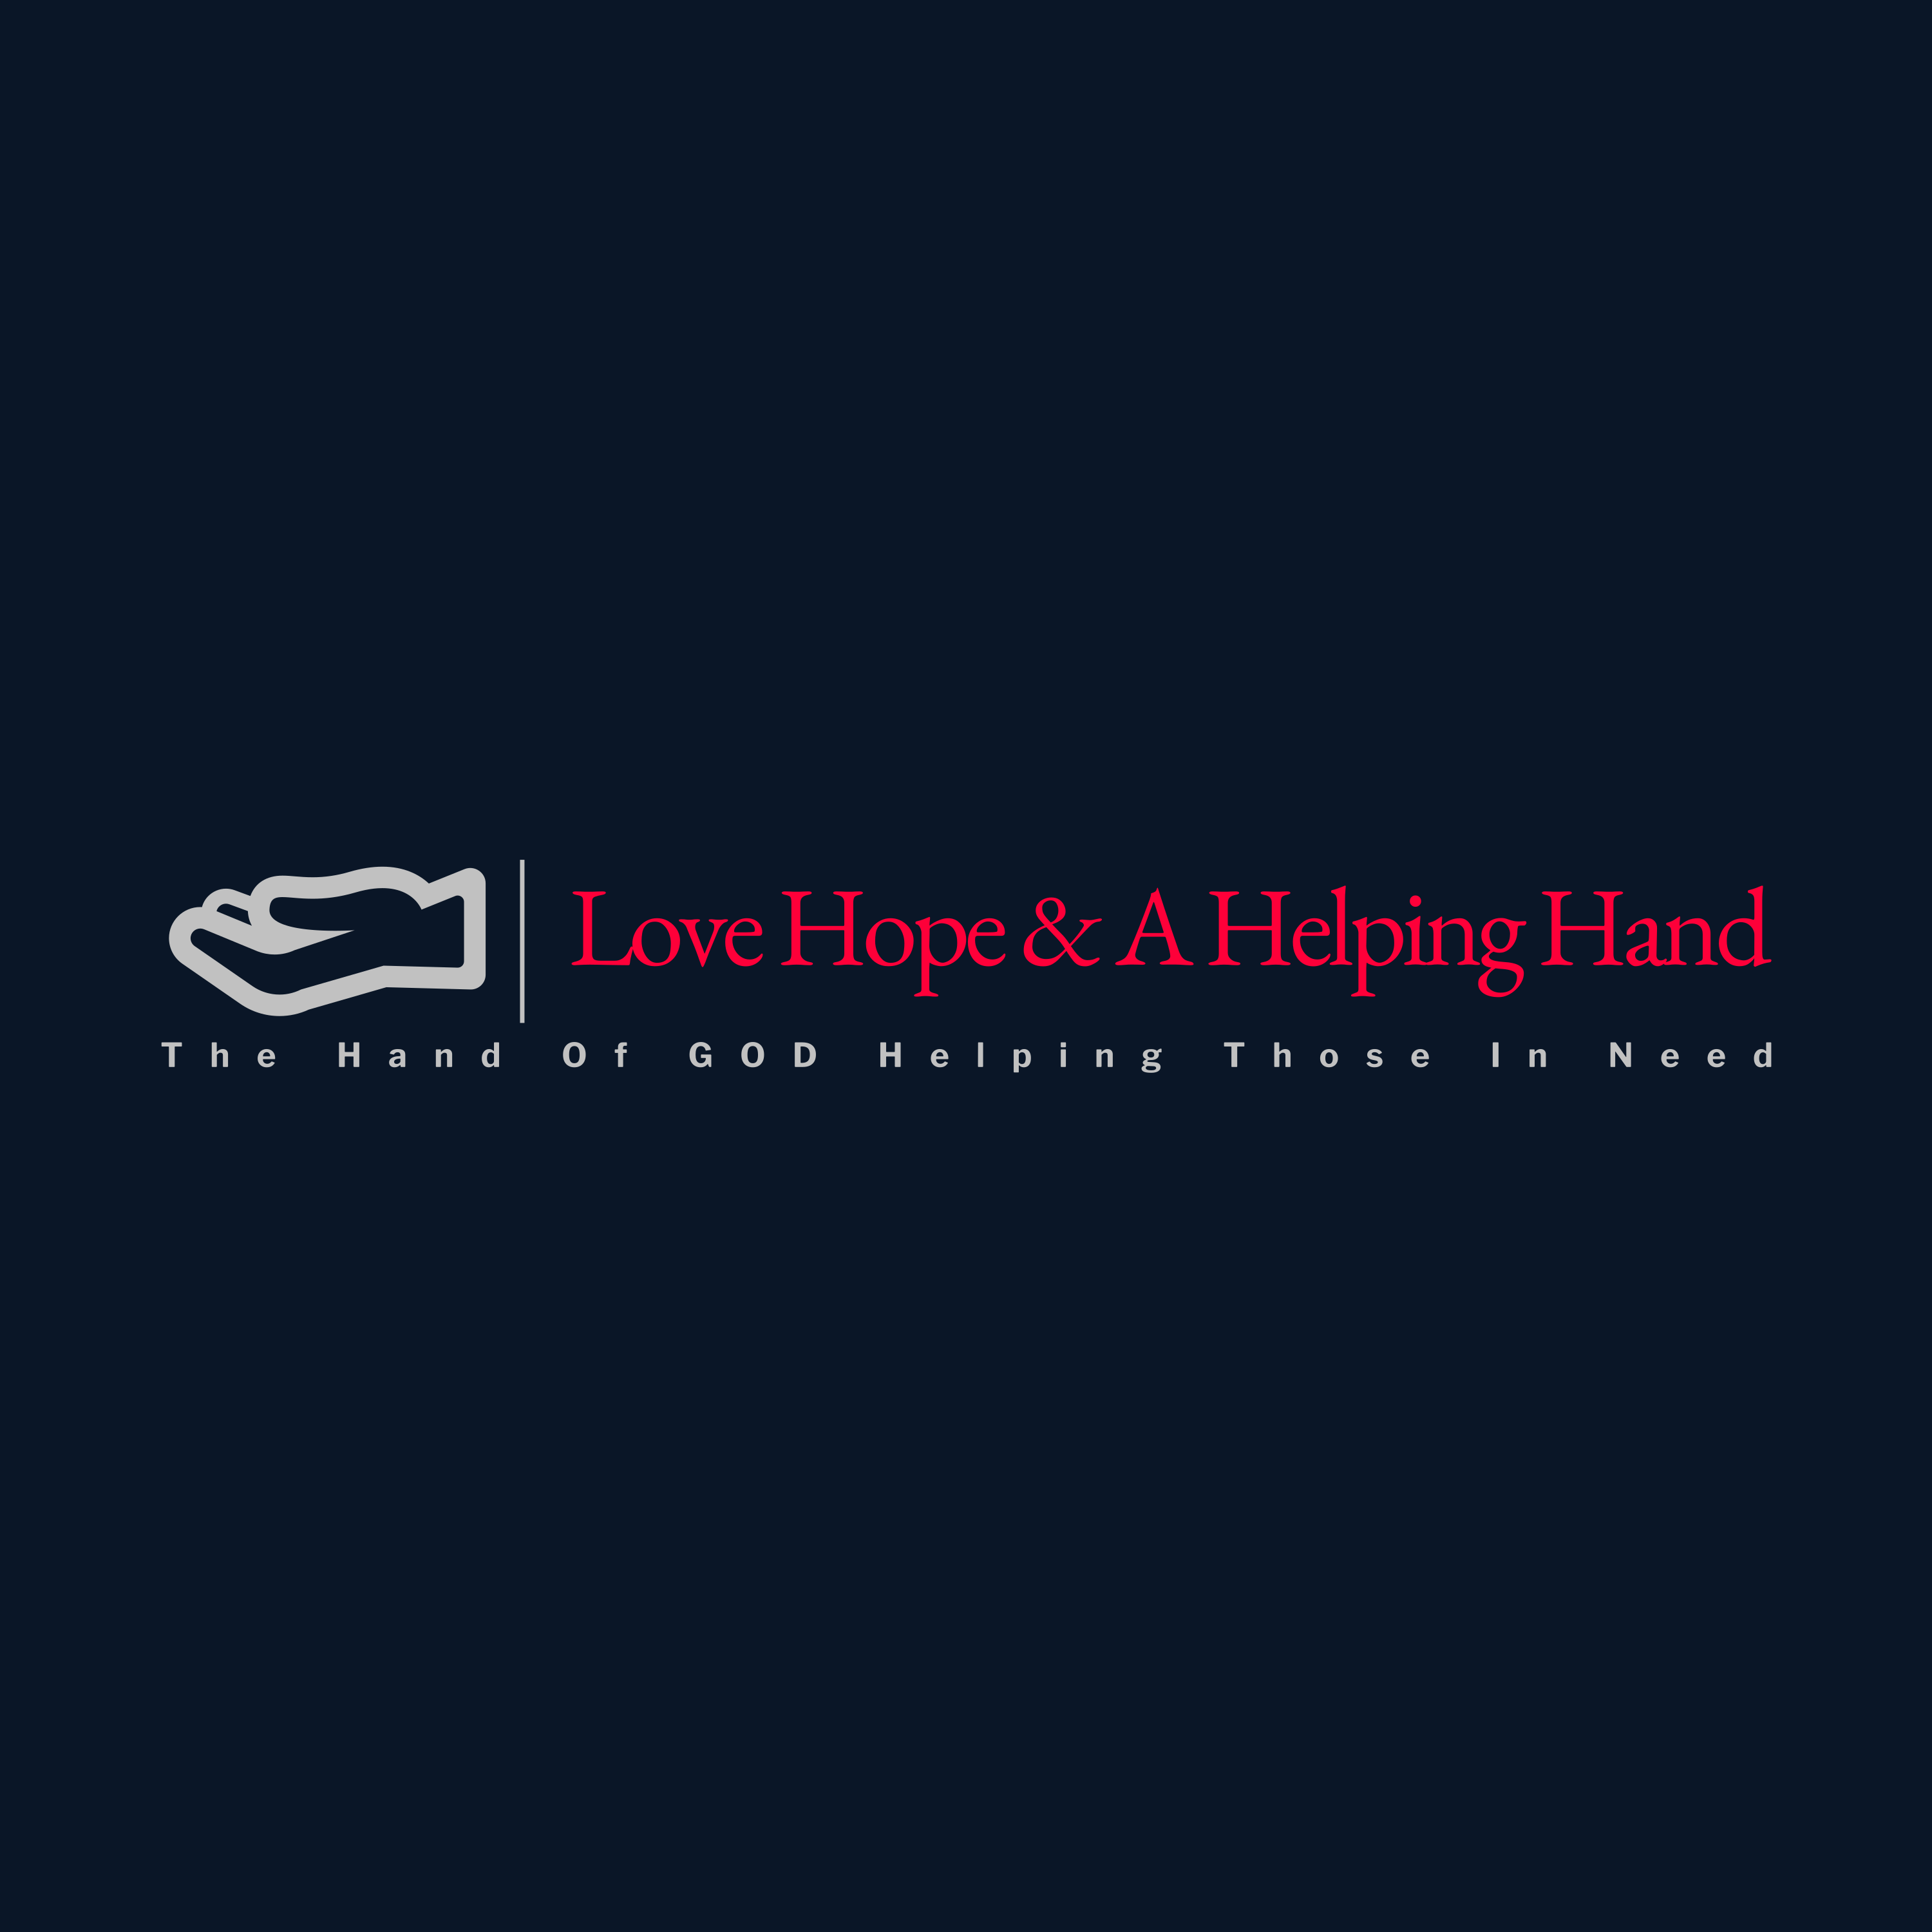 Love Hope & A Helping Hand